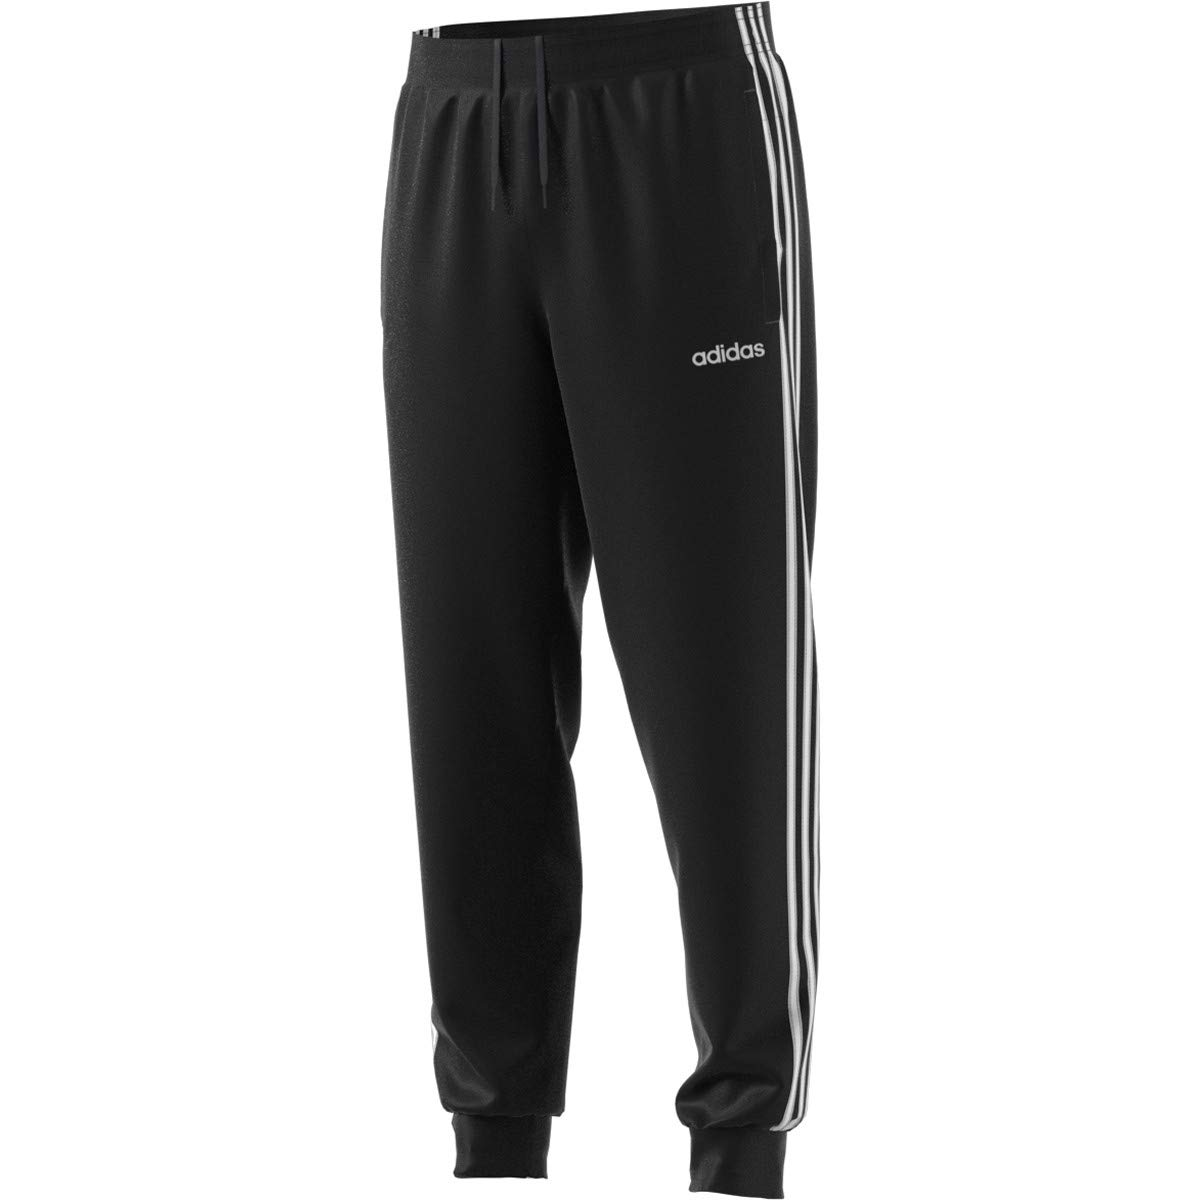 adidas Essentials Men's 3-Stripes Tapered Tricot Pants, Black/White, 4X-Large by adidas